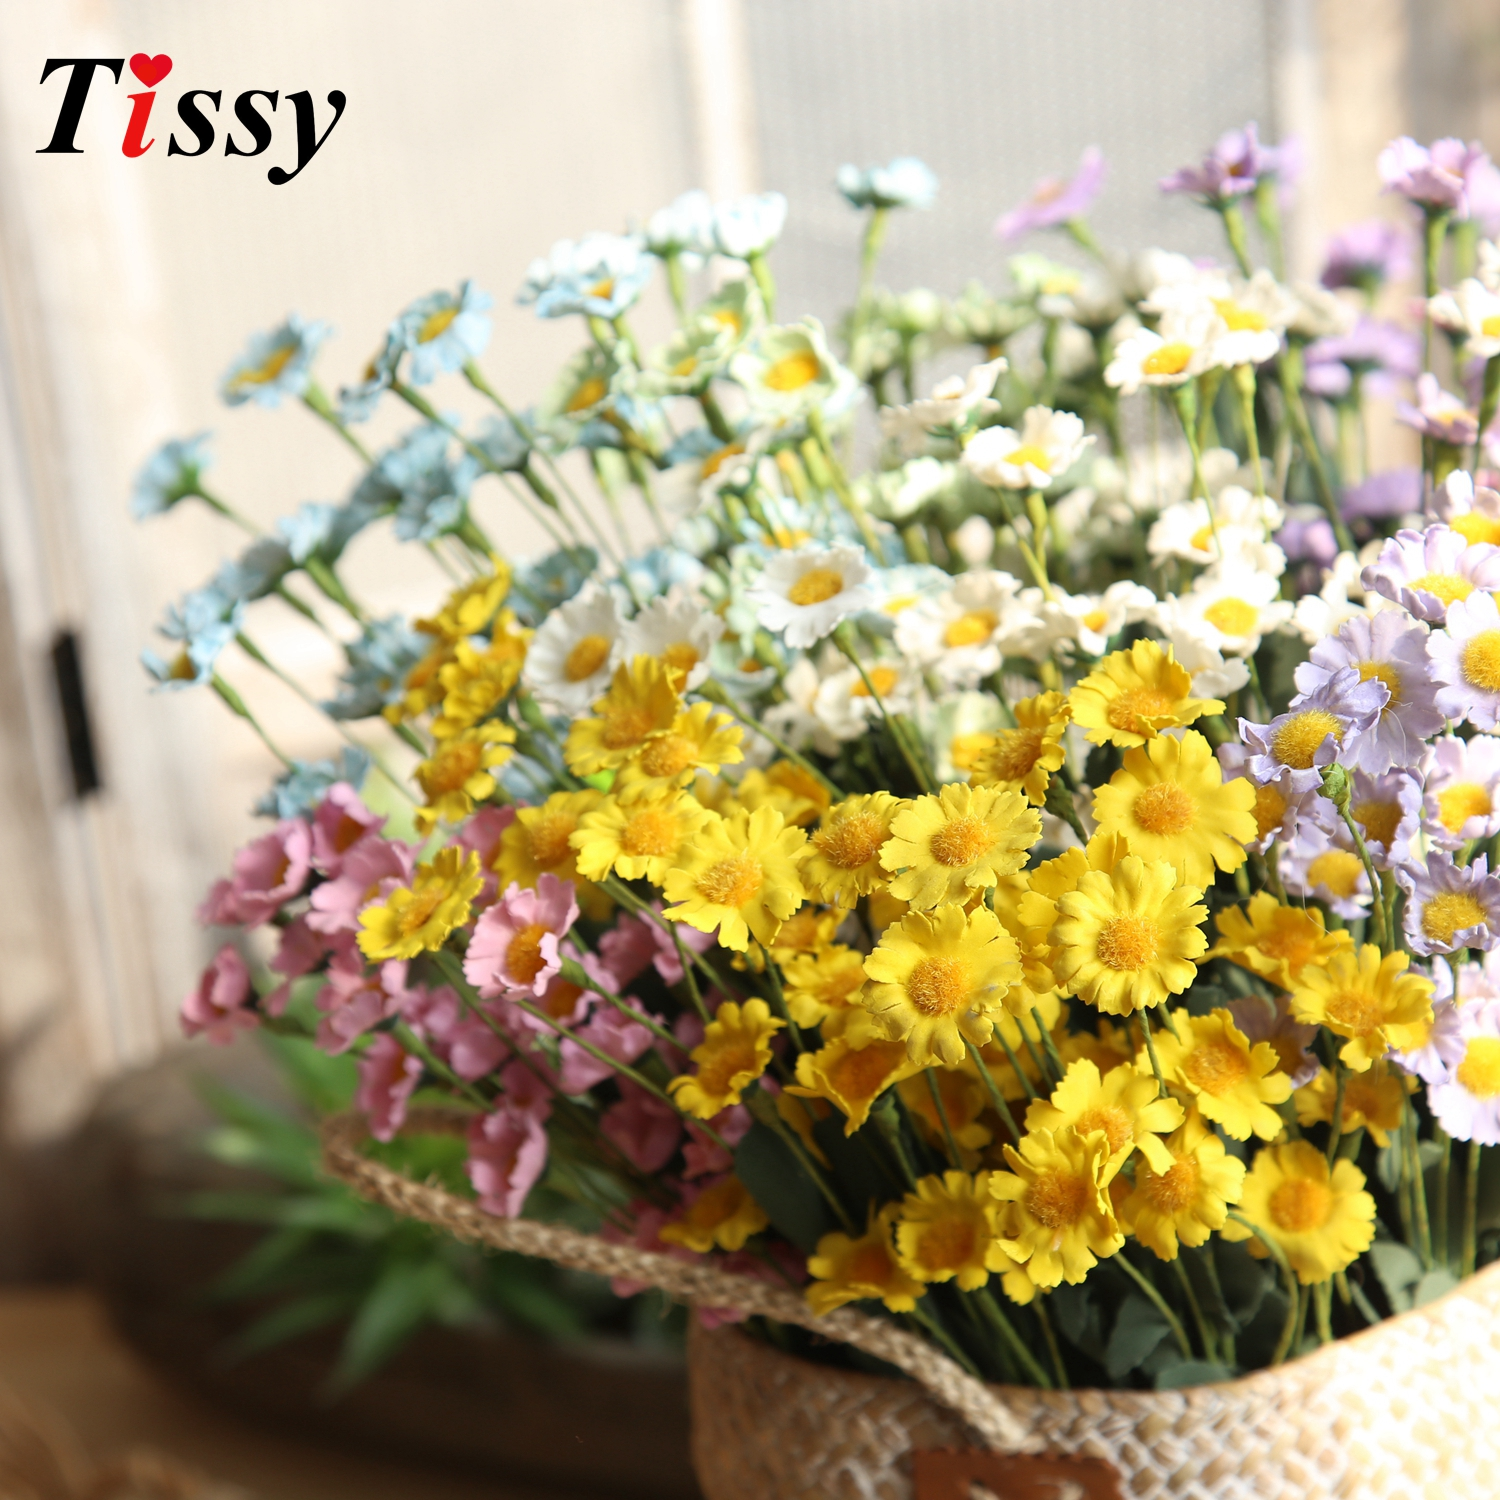 15 headbranch fresh daisy flowers artificial silk flowers fake 15 headbranch fresh daisy flowers artificial silk flowers fake flowers gifts diy home vases decoration wedding party decoration in artificial dried izmirmasajfo